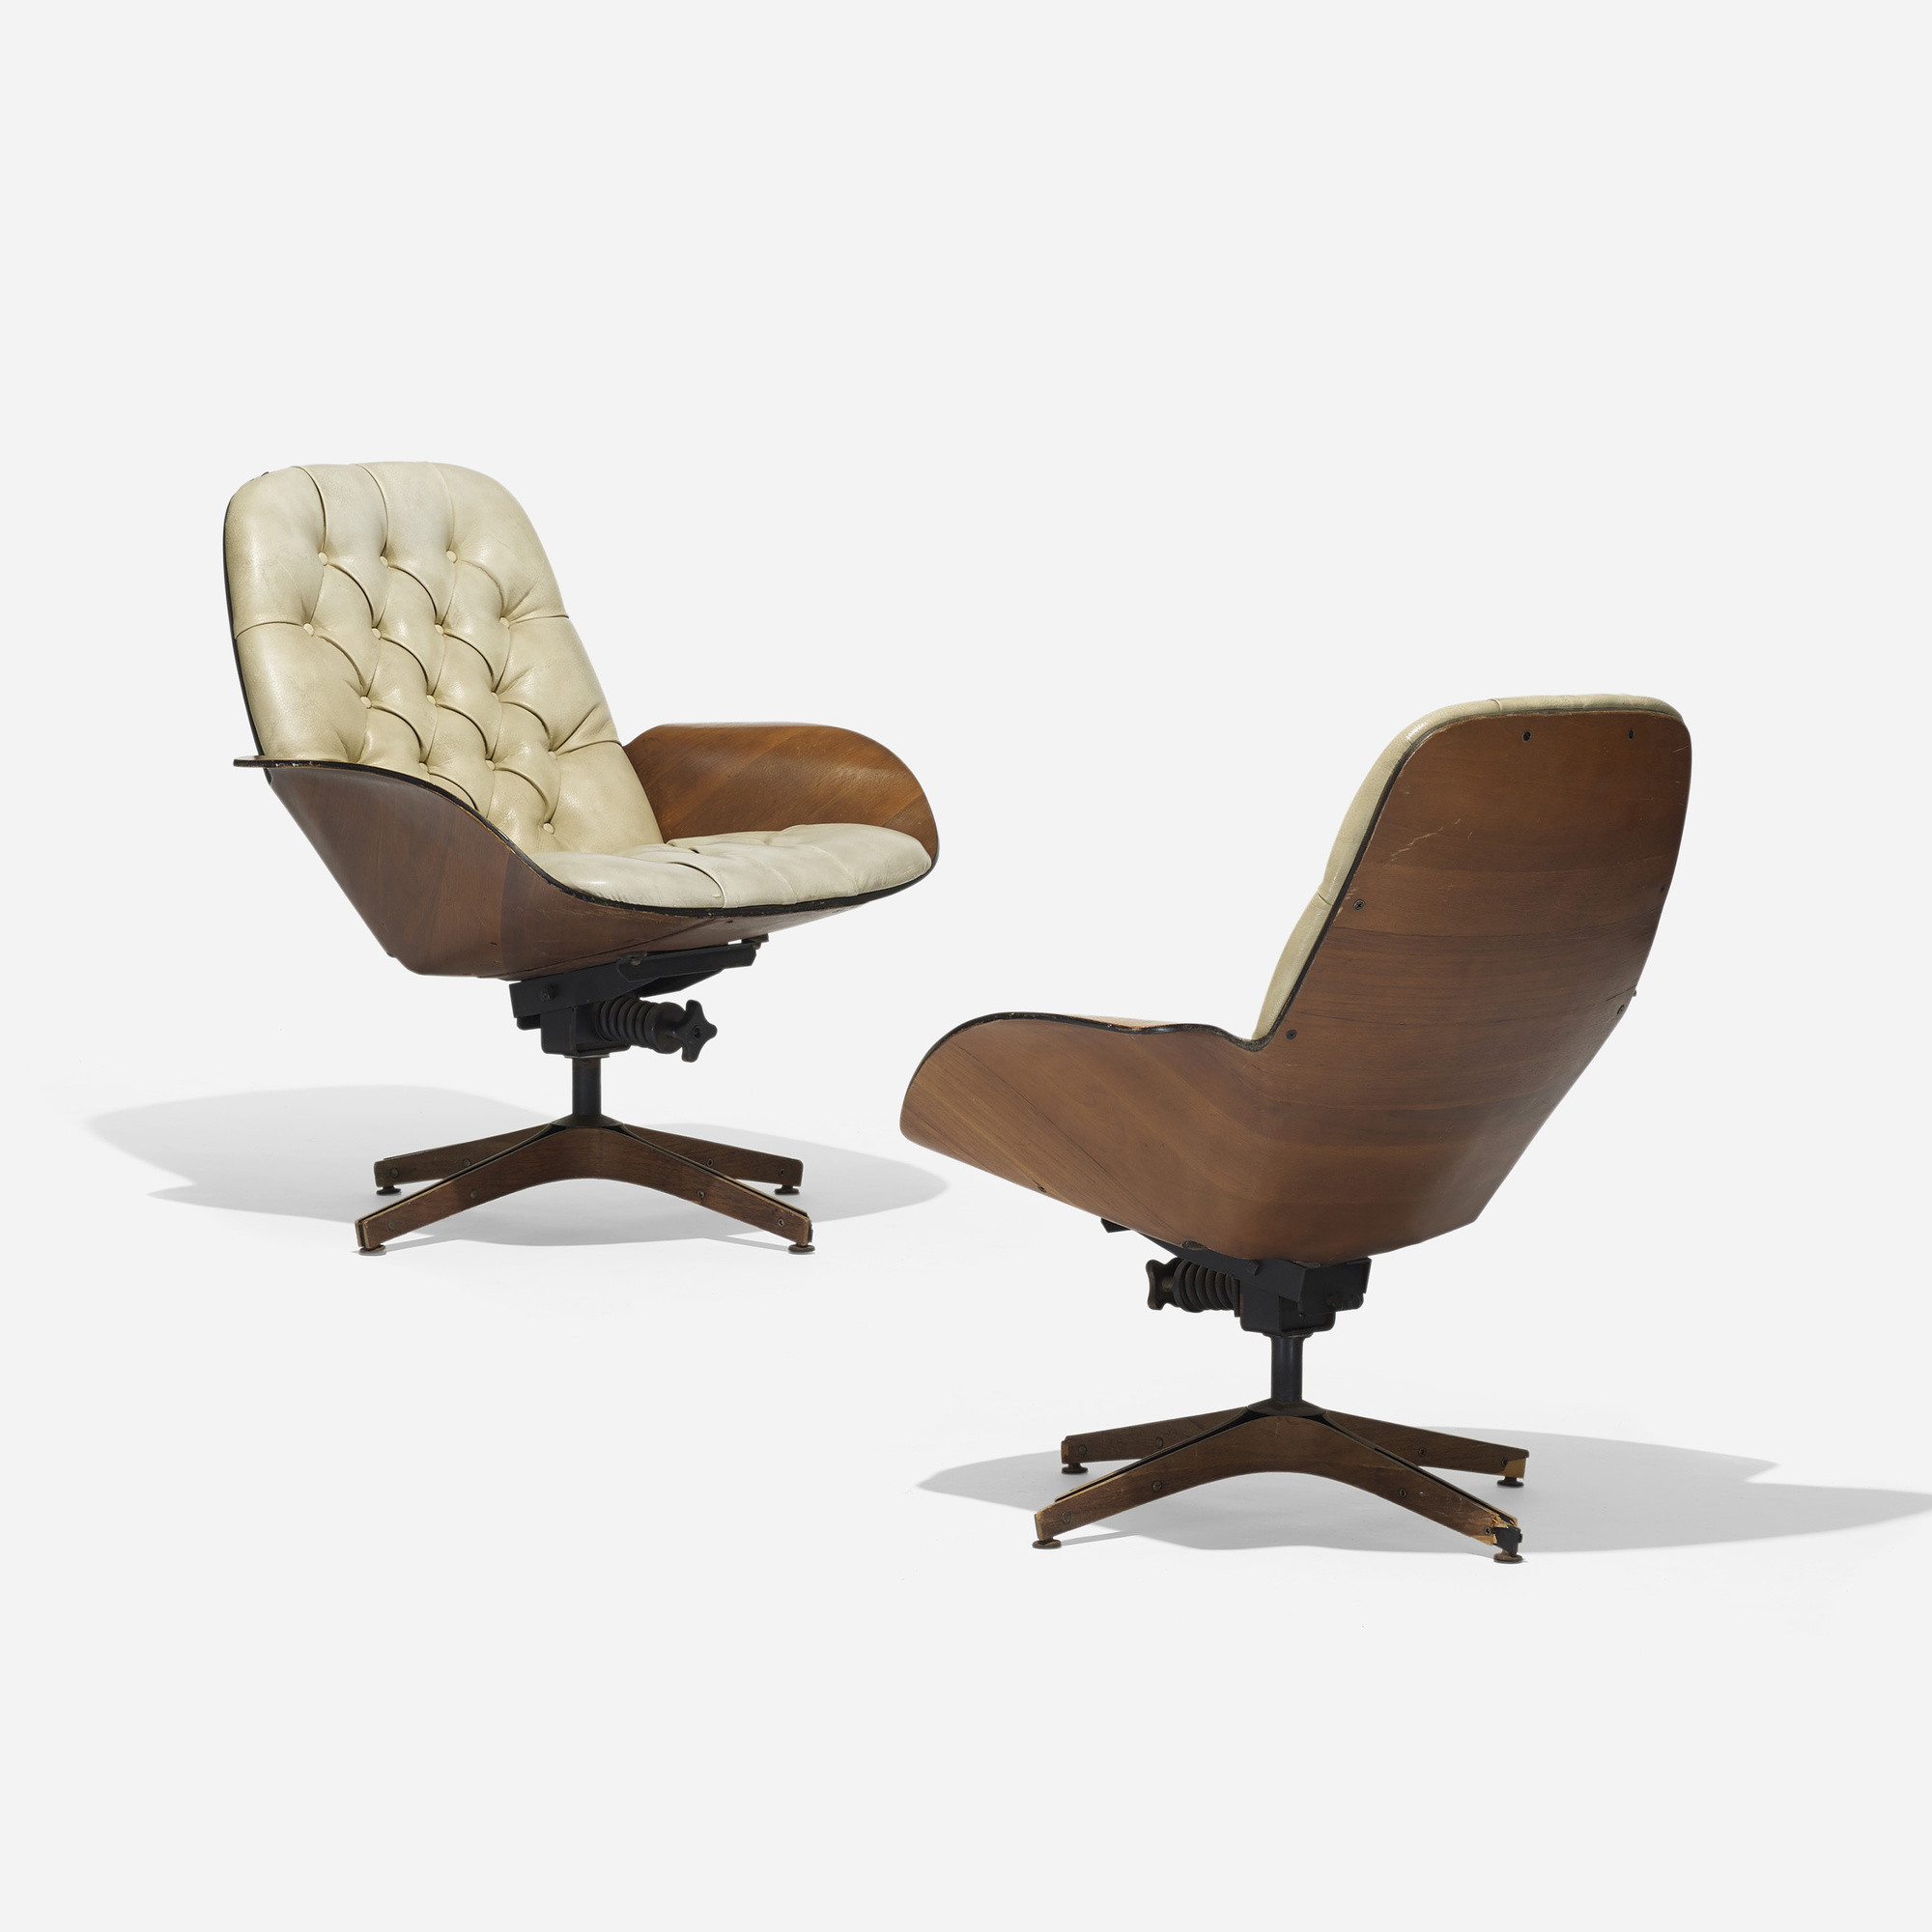 334: George Mulhauser / Mr. Chair Lounge Chairs, Pair (1 Of 4